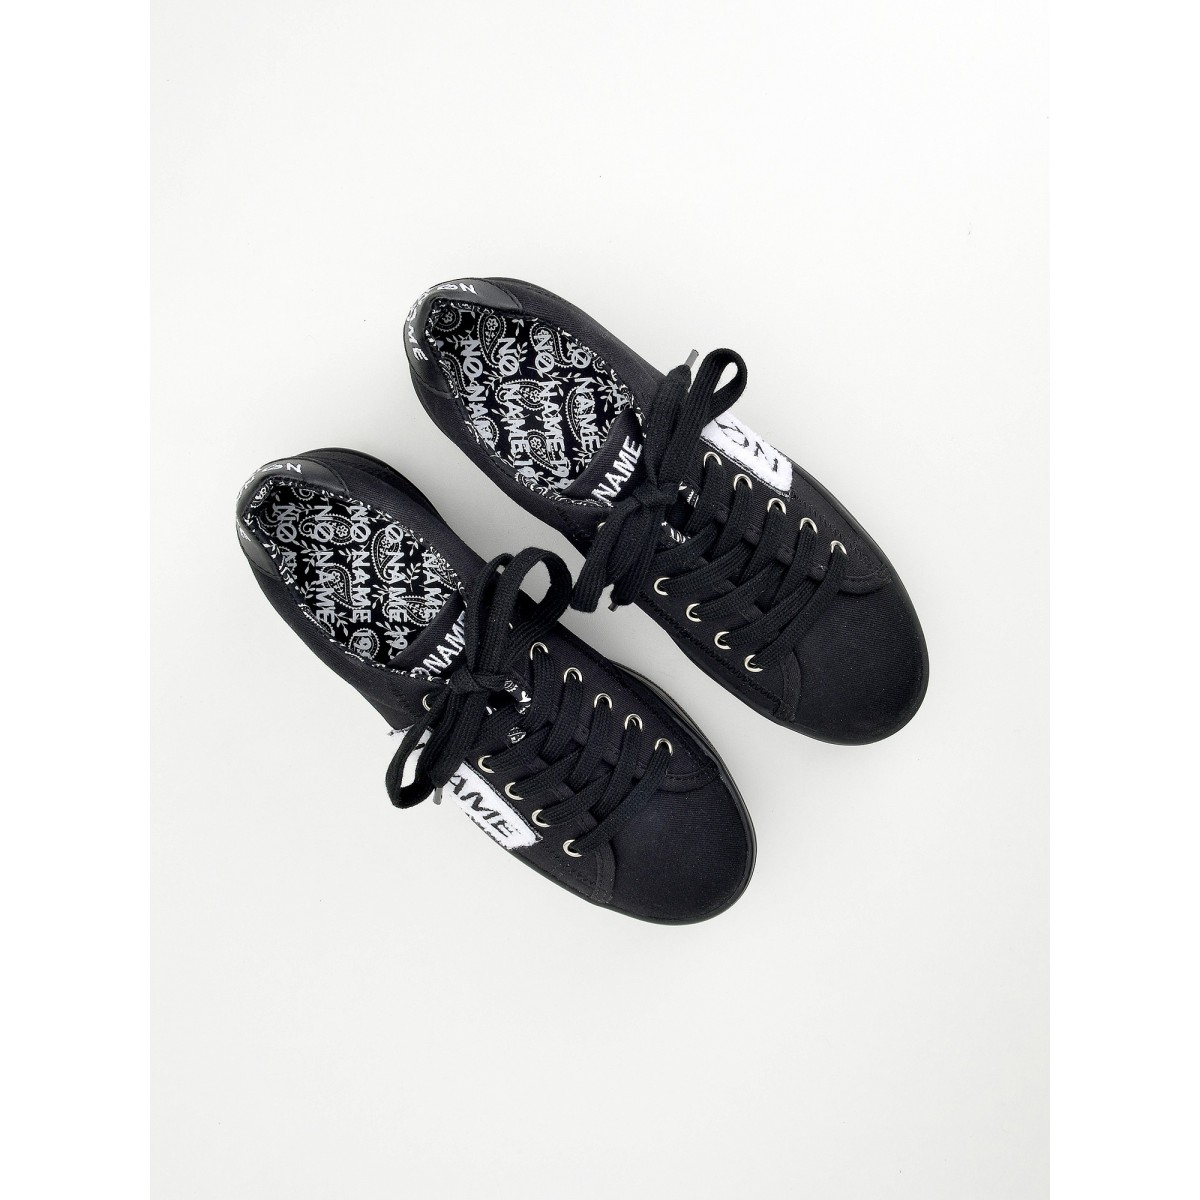 No Name Plato Sneaker - Twill/Patch - Black